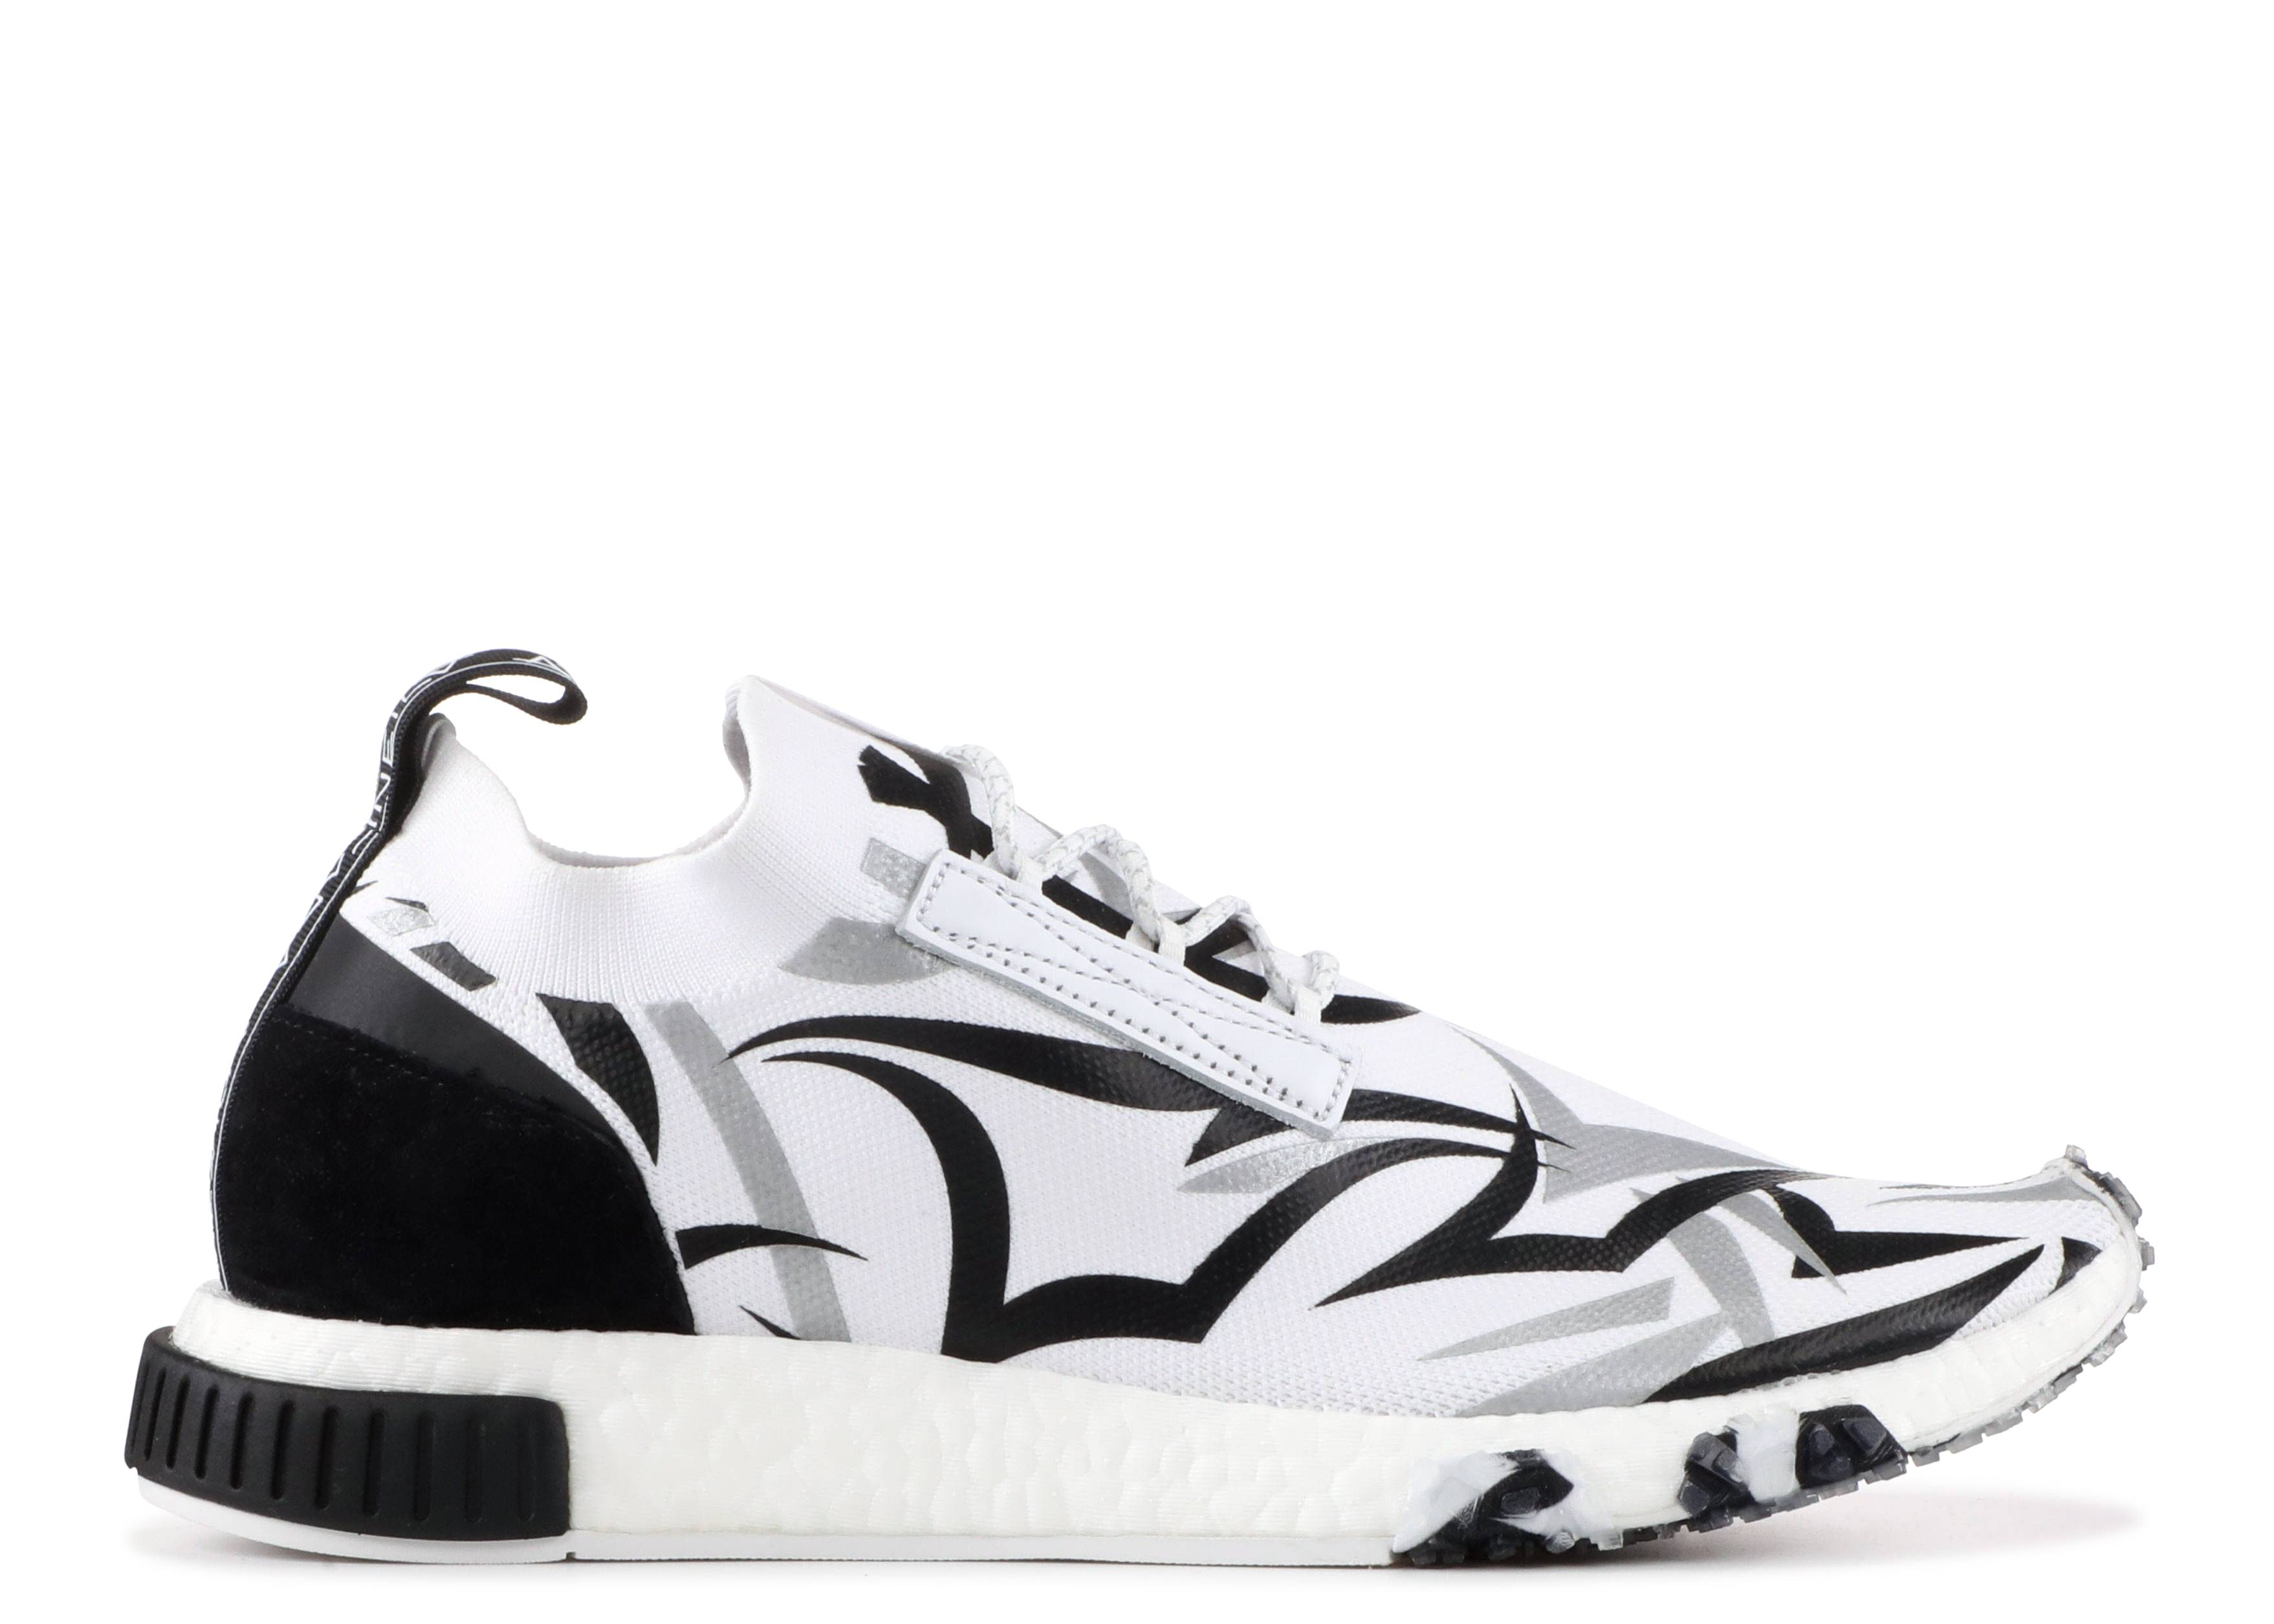 separation shoes 8b2f3 220e4 NMD Racer Juice